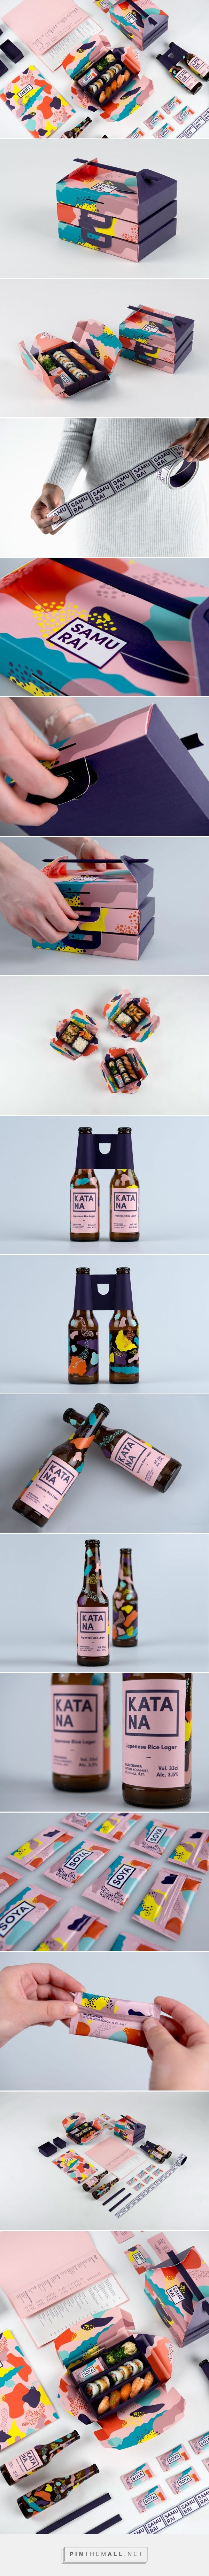 PACKAGING // colorful minimal clean design — collaborative design — explosive creative